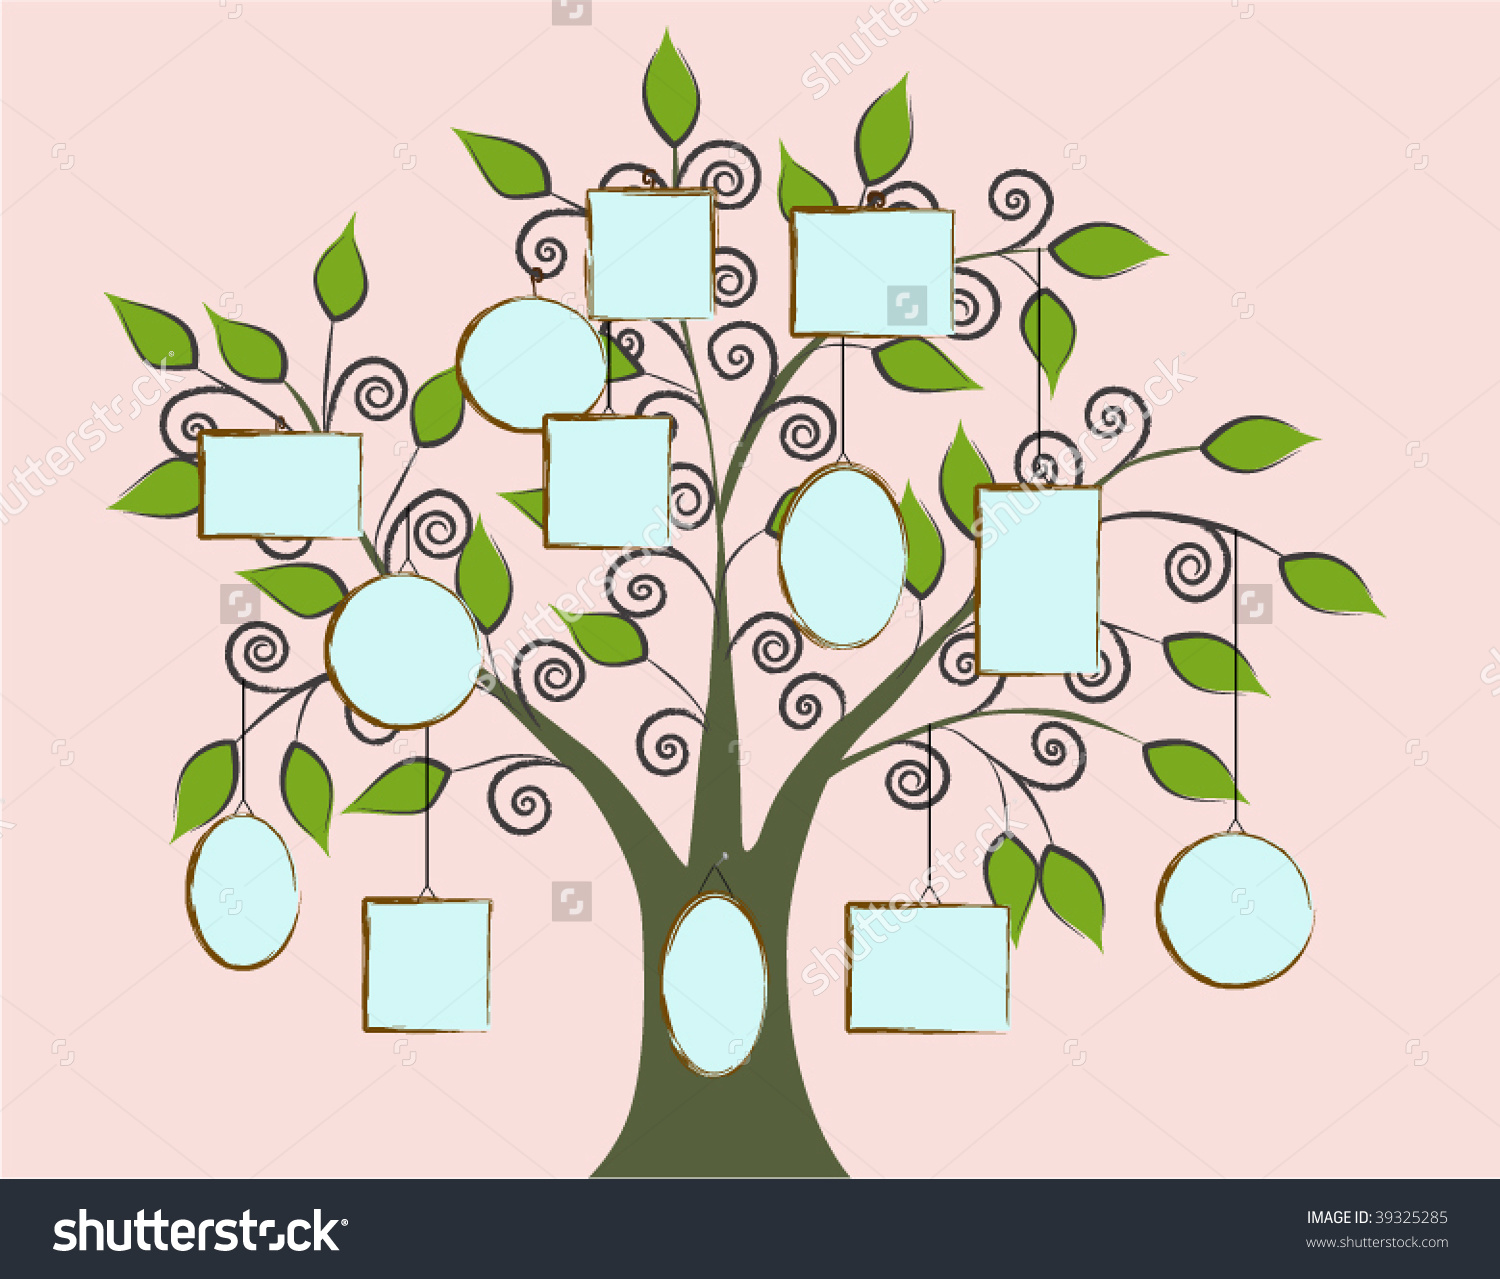 Build Your Family Tree Stock Vector Illustration 39325285.